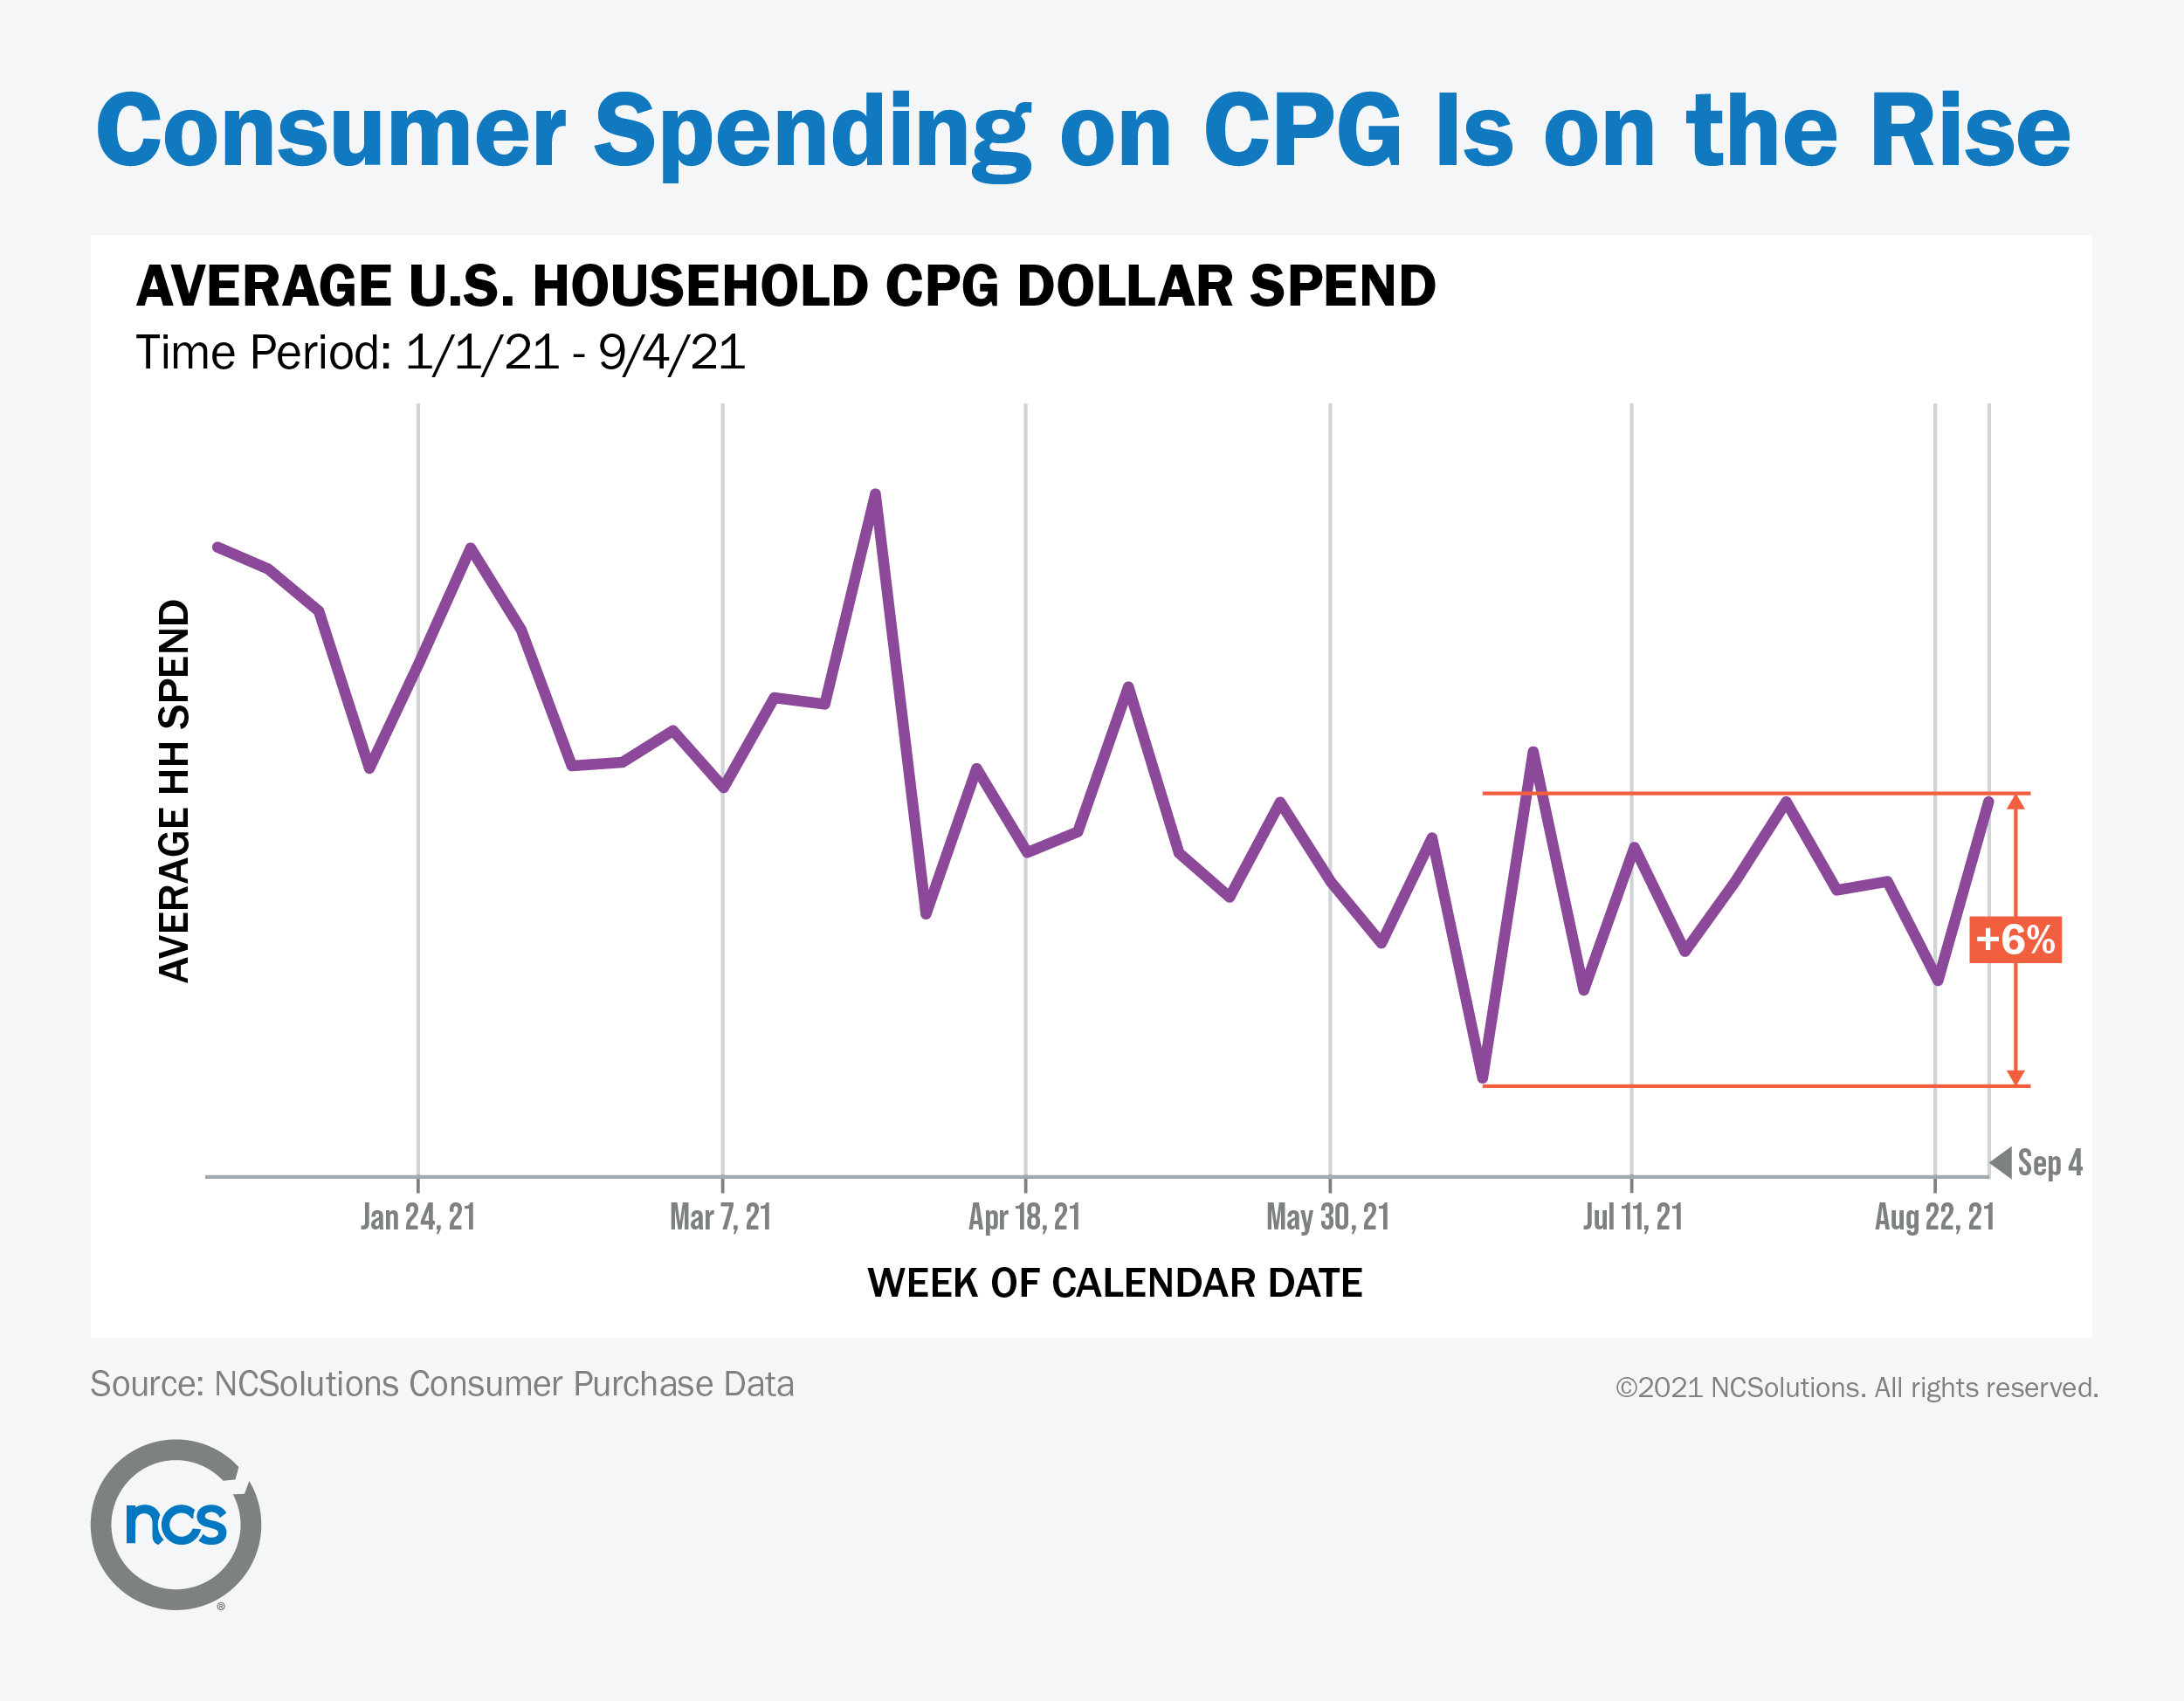 graph shows that household CPG spend increased from June through September 2021